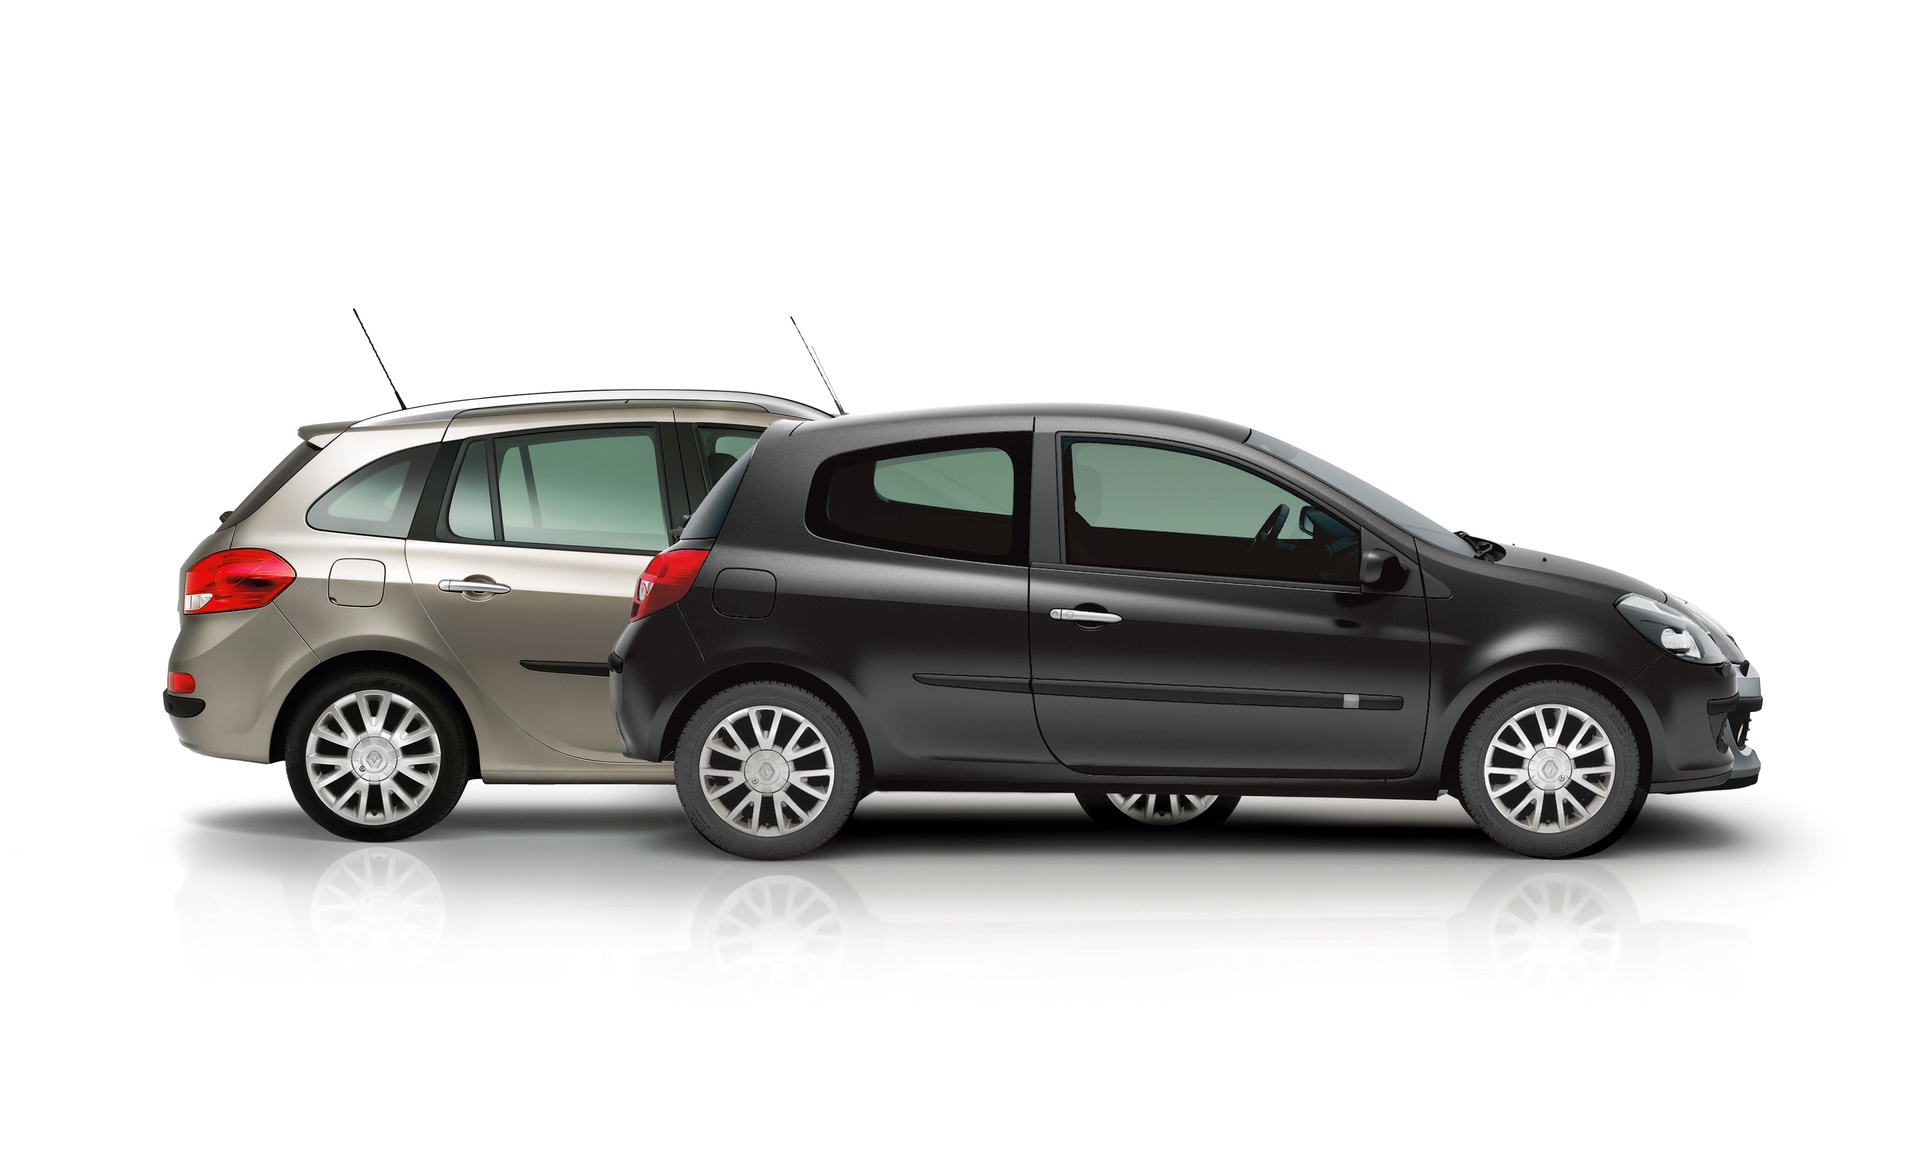 2020-30-years-of-Renault-CLIO-Renault-CLIO-III-2005-2012-13